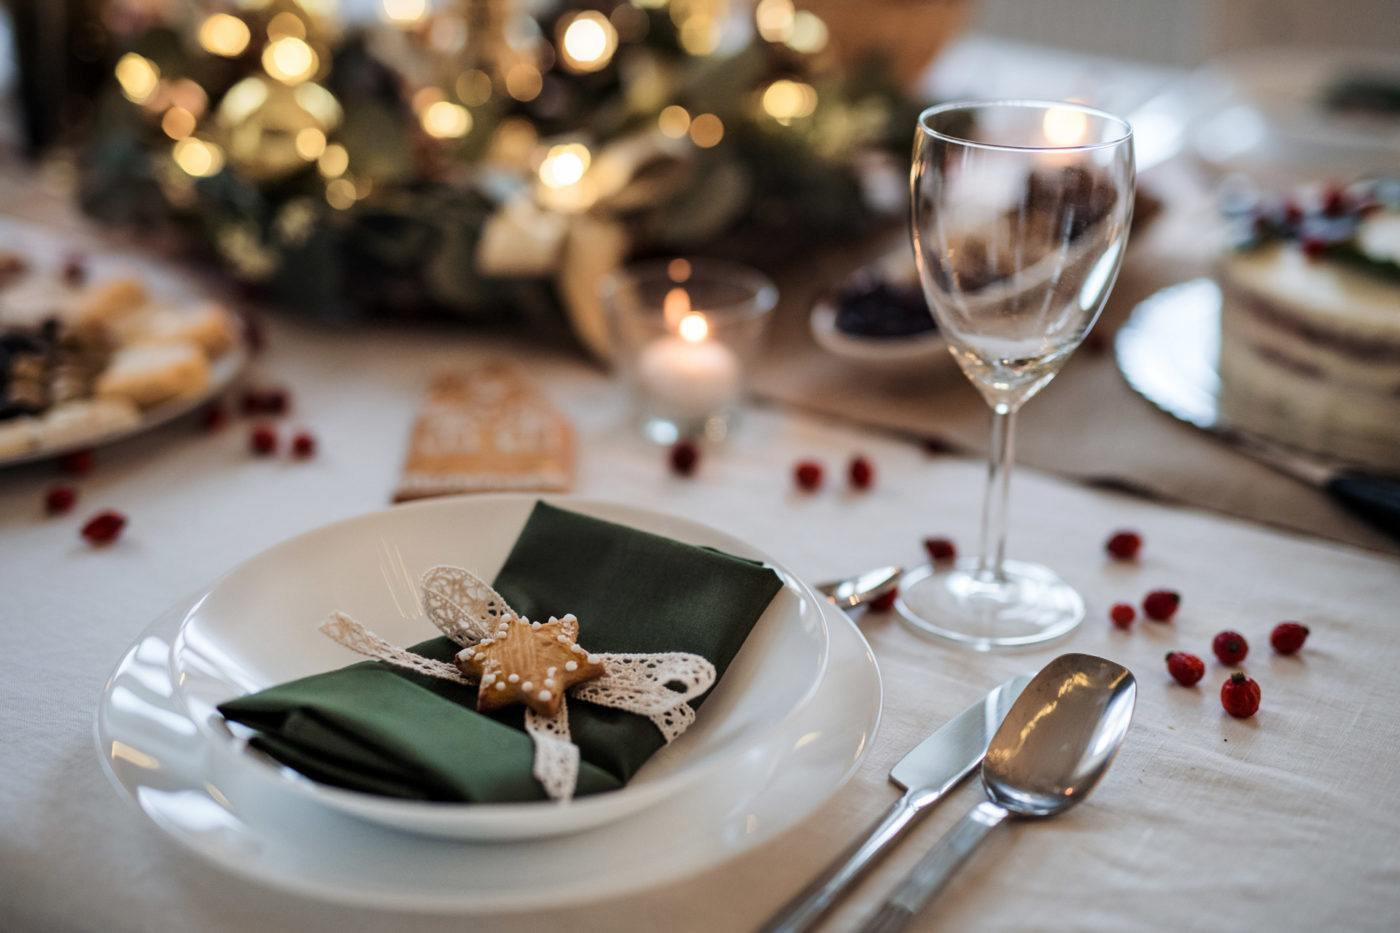 holiday table place setting with white plate and green napkin folded on top